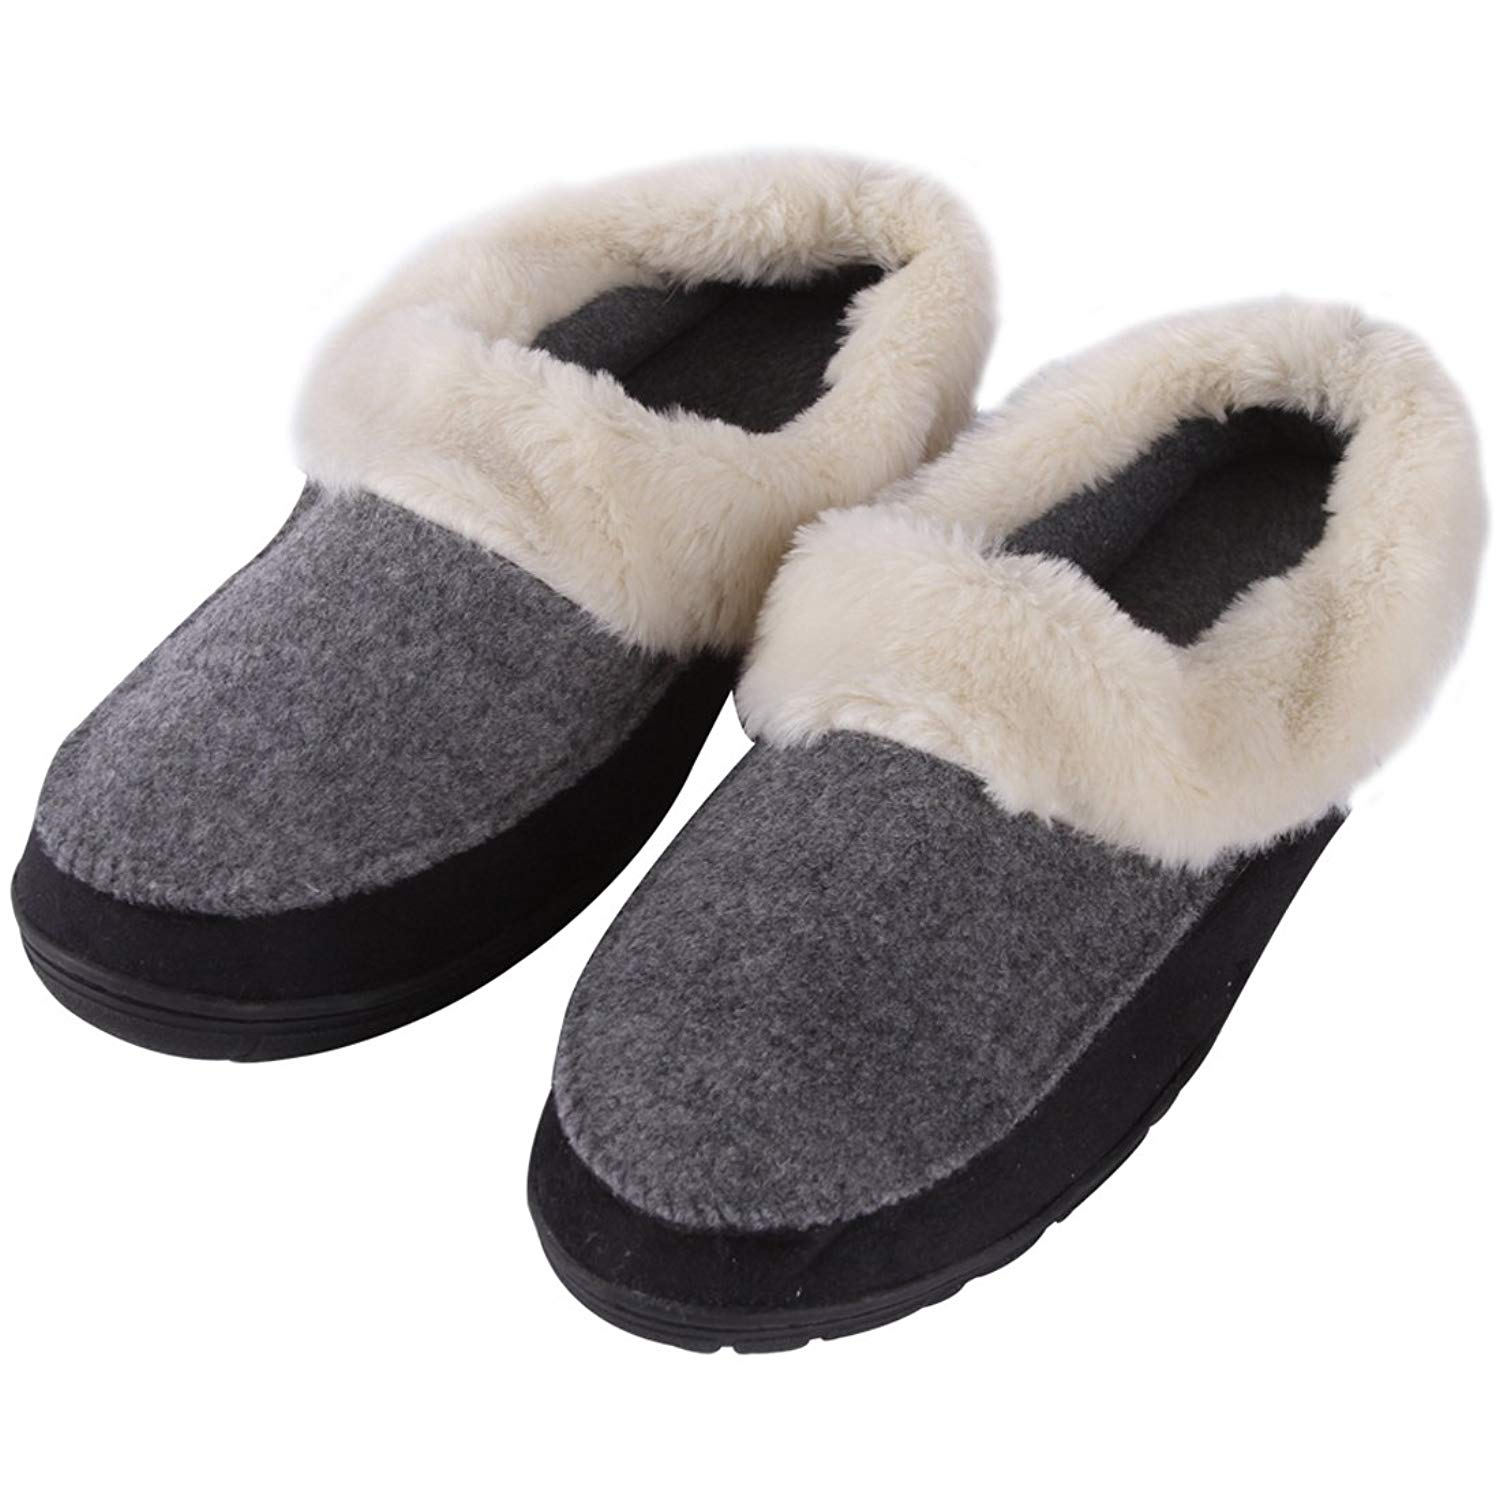 0e751e5f2 Get Quotations · Forfoot Slippers Women Men Warm Faux Fur Suede House Boot Slippers  Indoor Outdoor